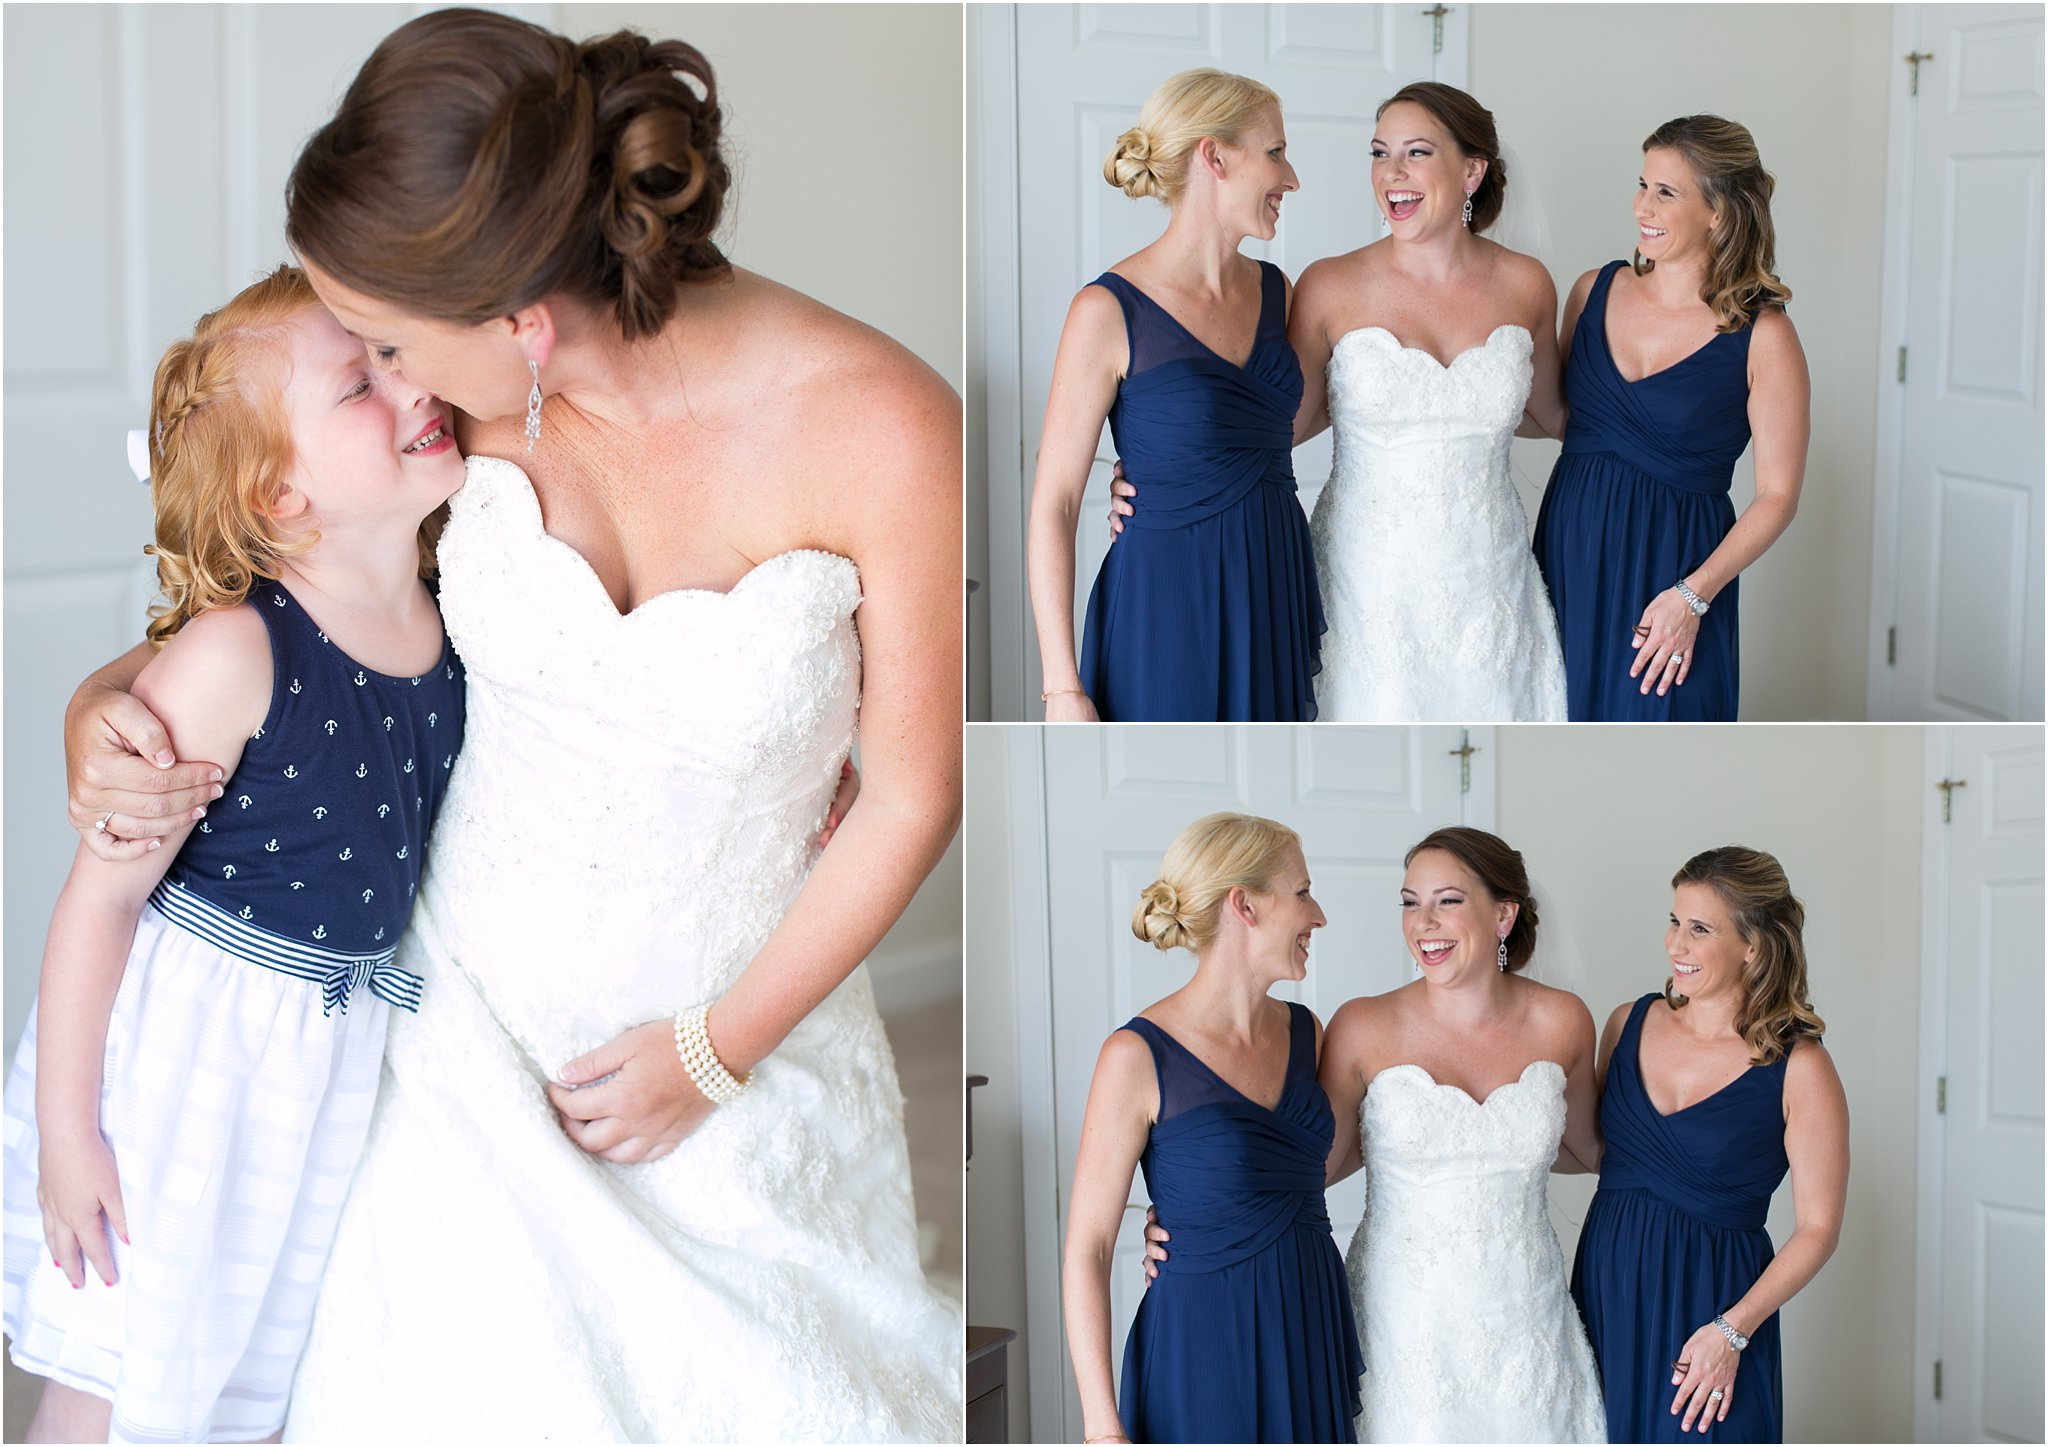 jessica_ryan_photography_wedding_photography_virginiabeach_virginia_candid_authentic_wedding_portraits_marina_shores_yacht_club_chesapeake_bay_1830